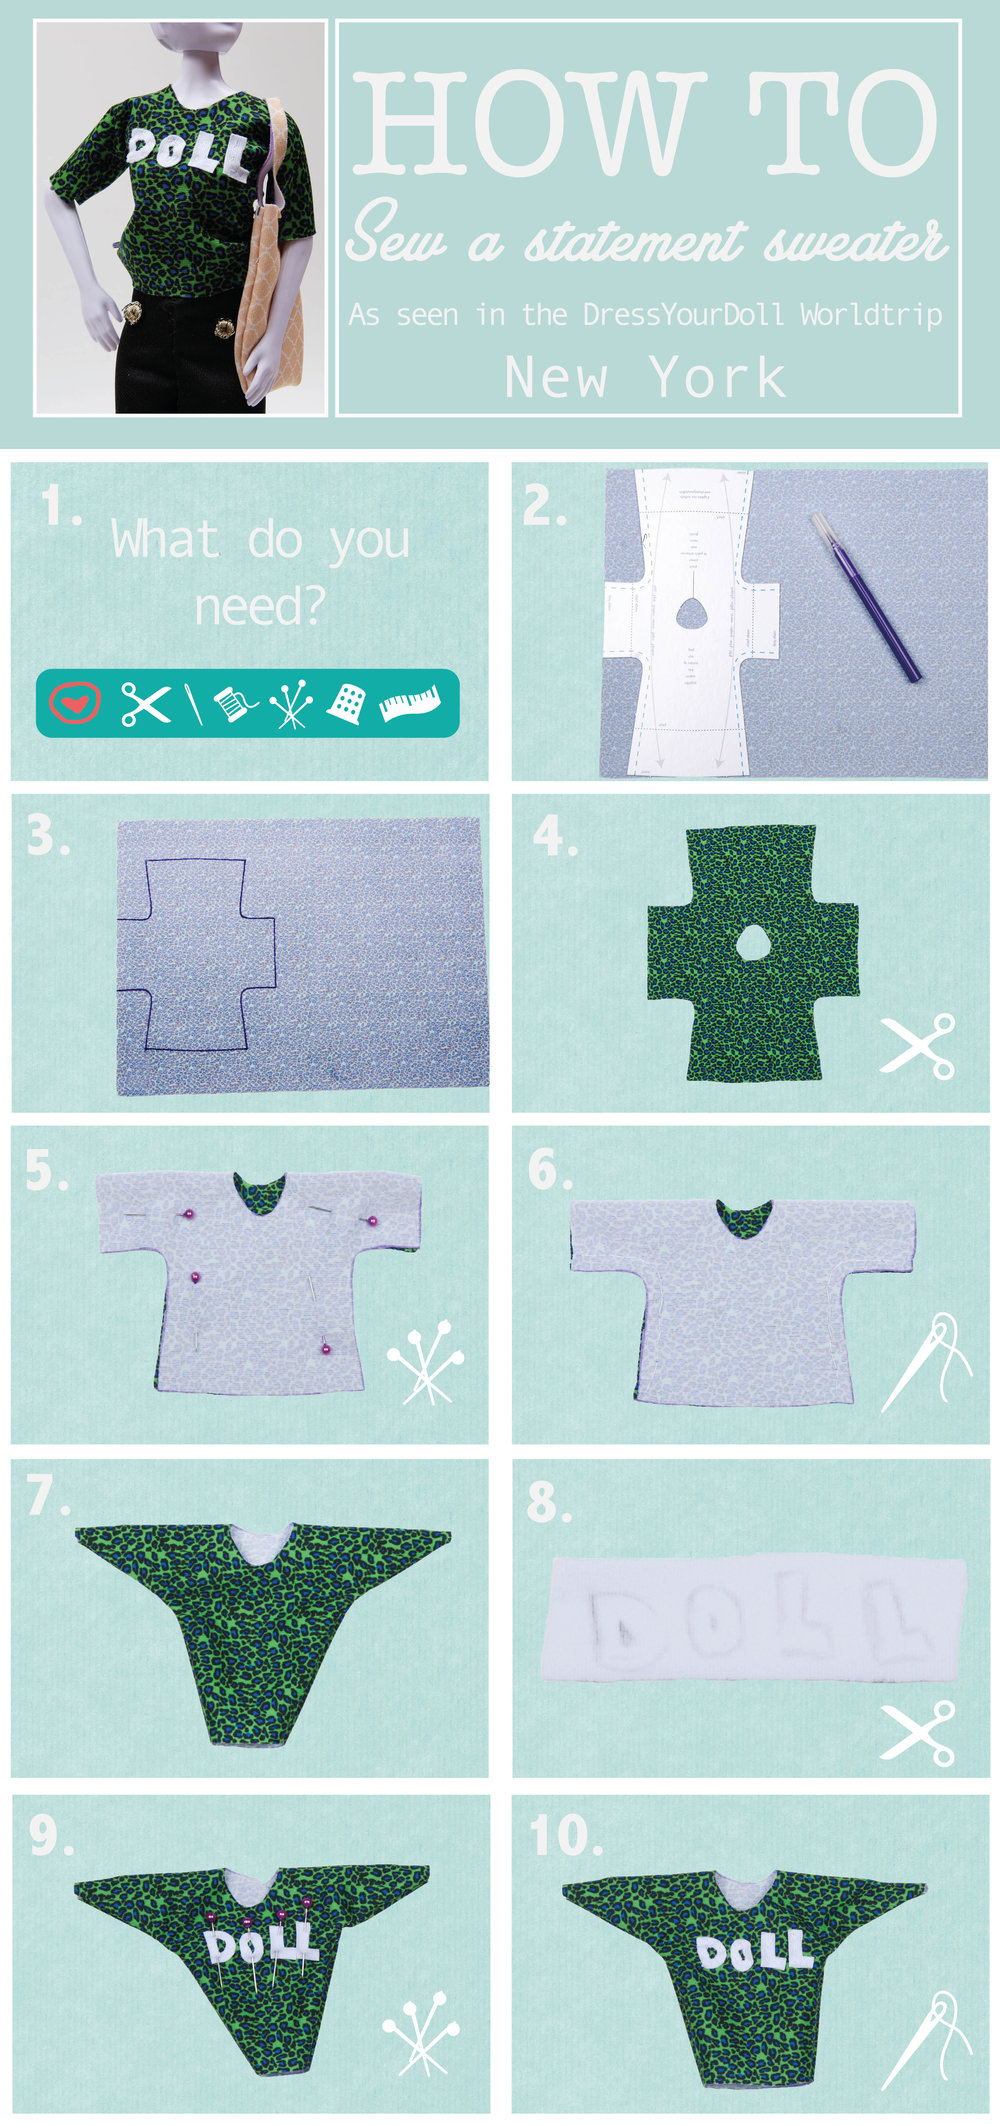 Pattern set: 1 - Fabric Set: PN-0164674 Greens